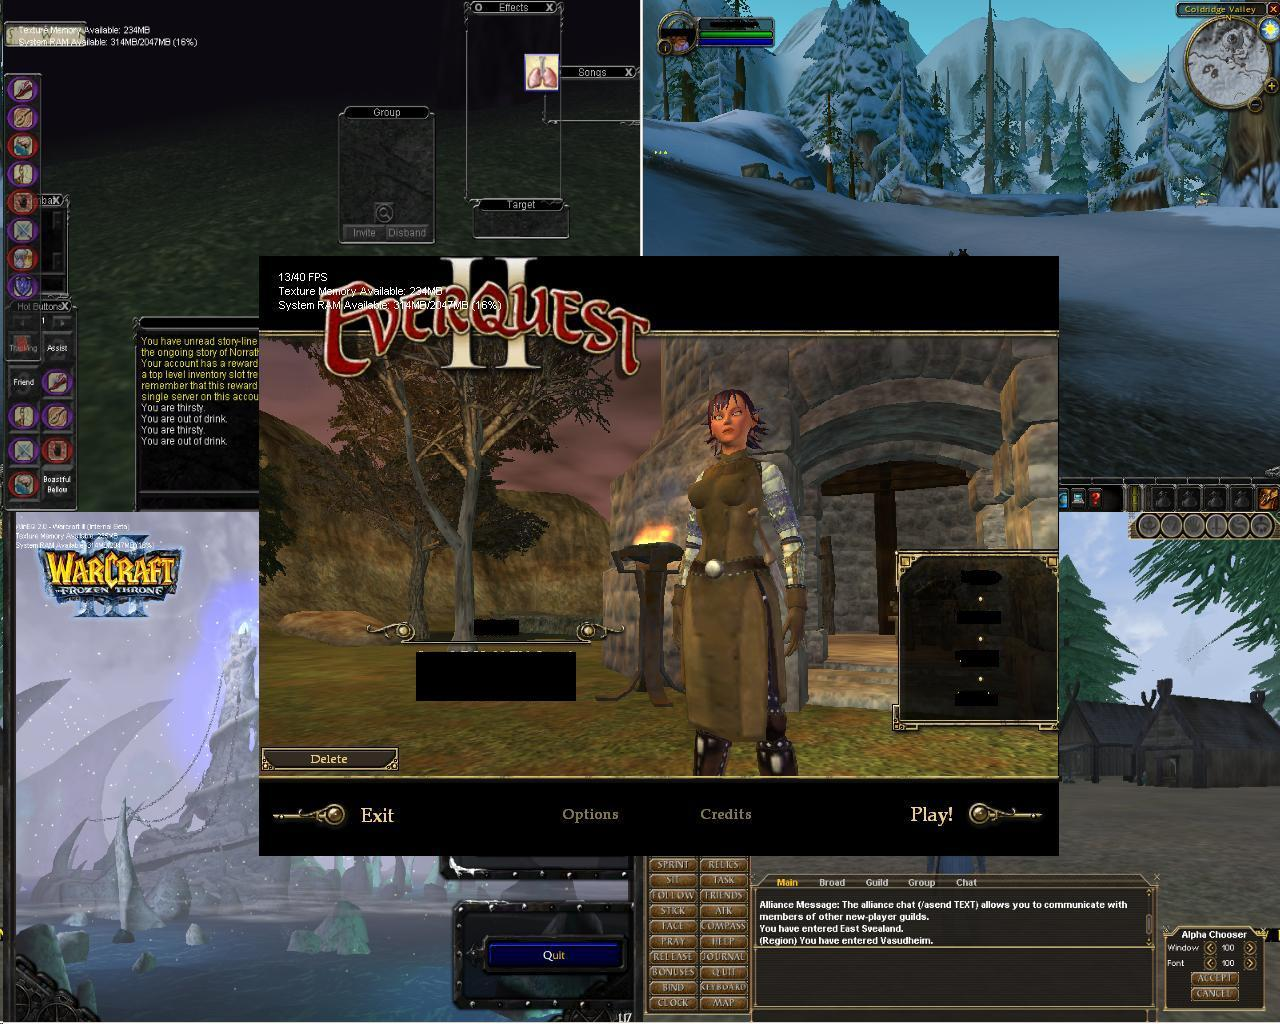 WinEQ - everquest, world of warcraft, warcraft, daoc, dark age of camelot - Play multiple MMORPG characters with pic-in-pic and more!